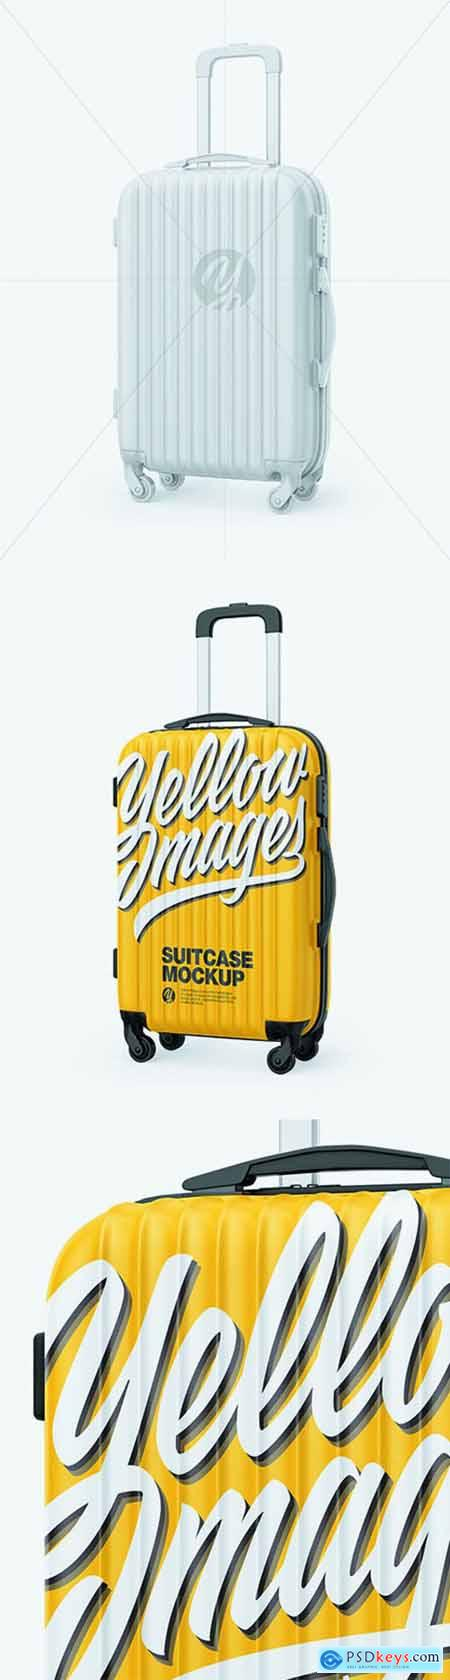 Travel Suitcase Mockup - Half Side View 68868